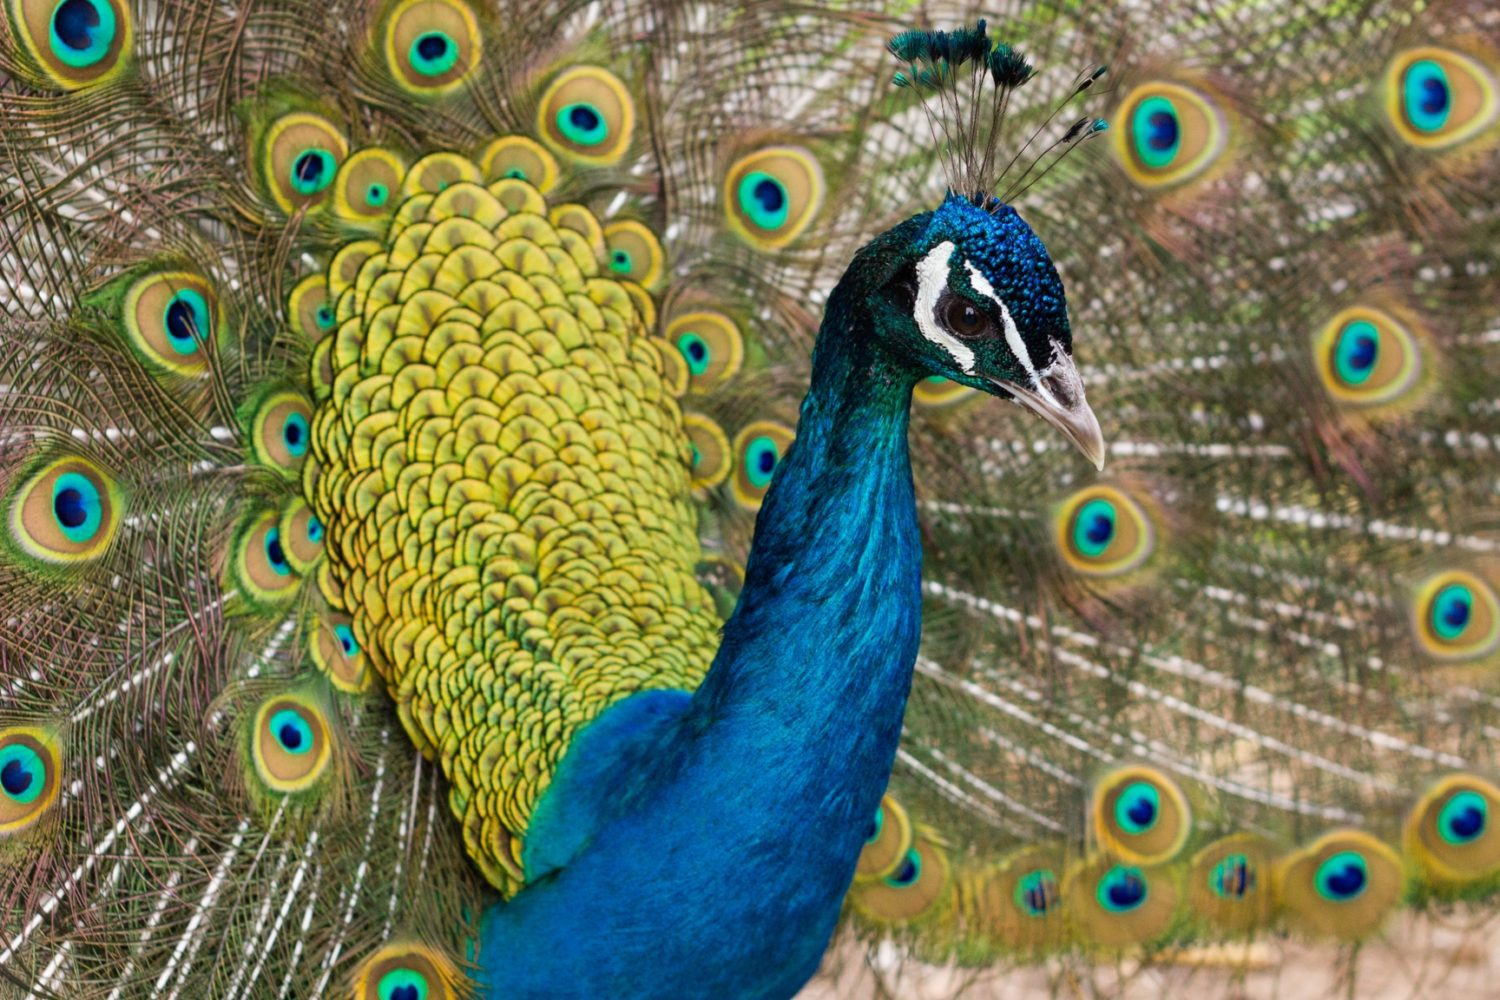 United Airlines Peacock